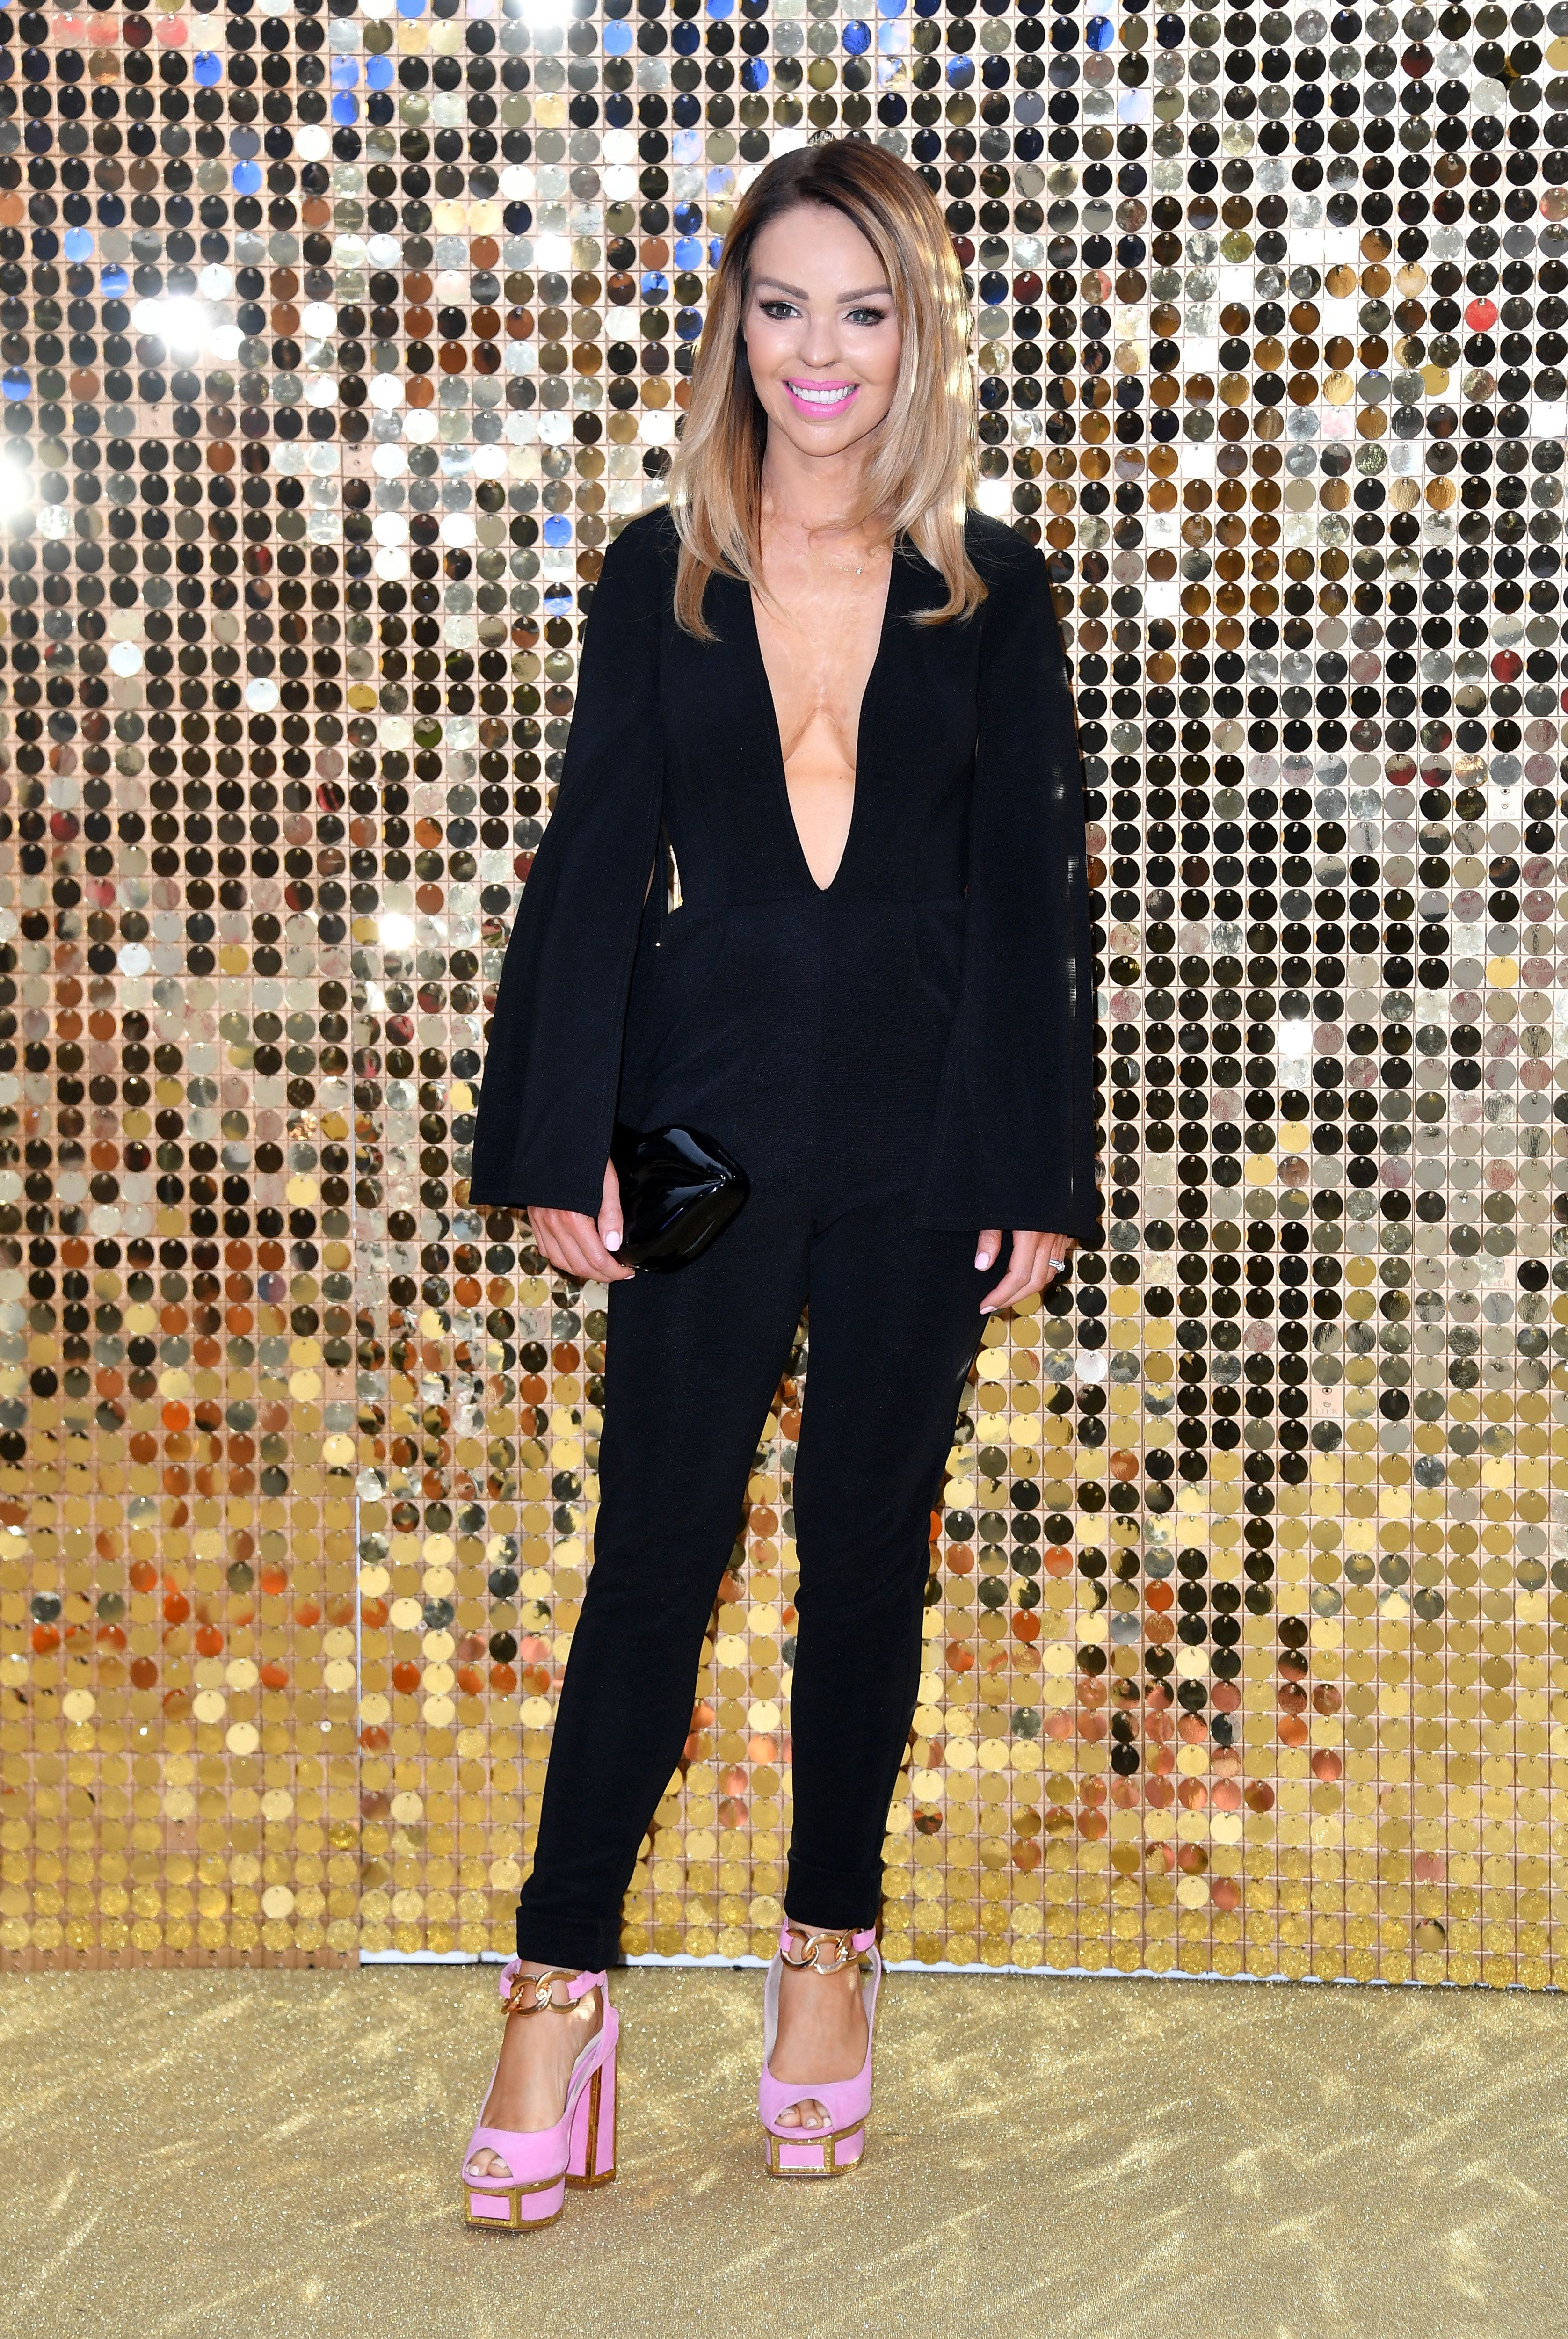 How Katie Piper Discovered The Power Of Fashion After She Had To Wear A Hospital Gown For Two